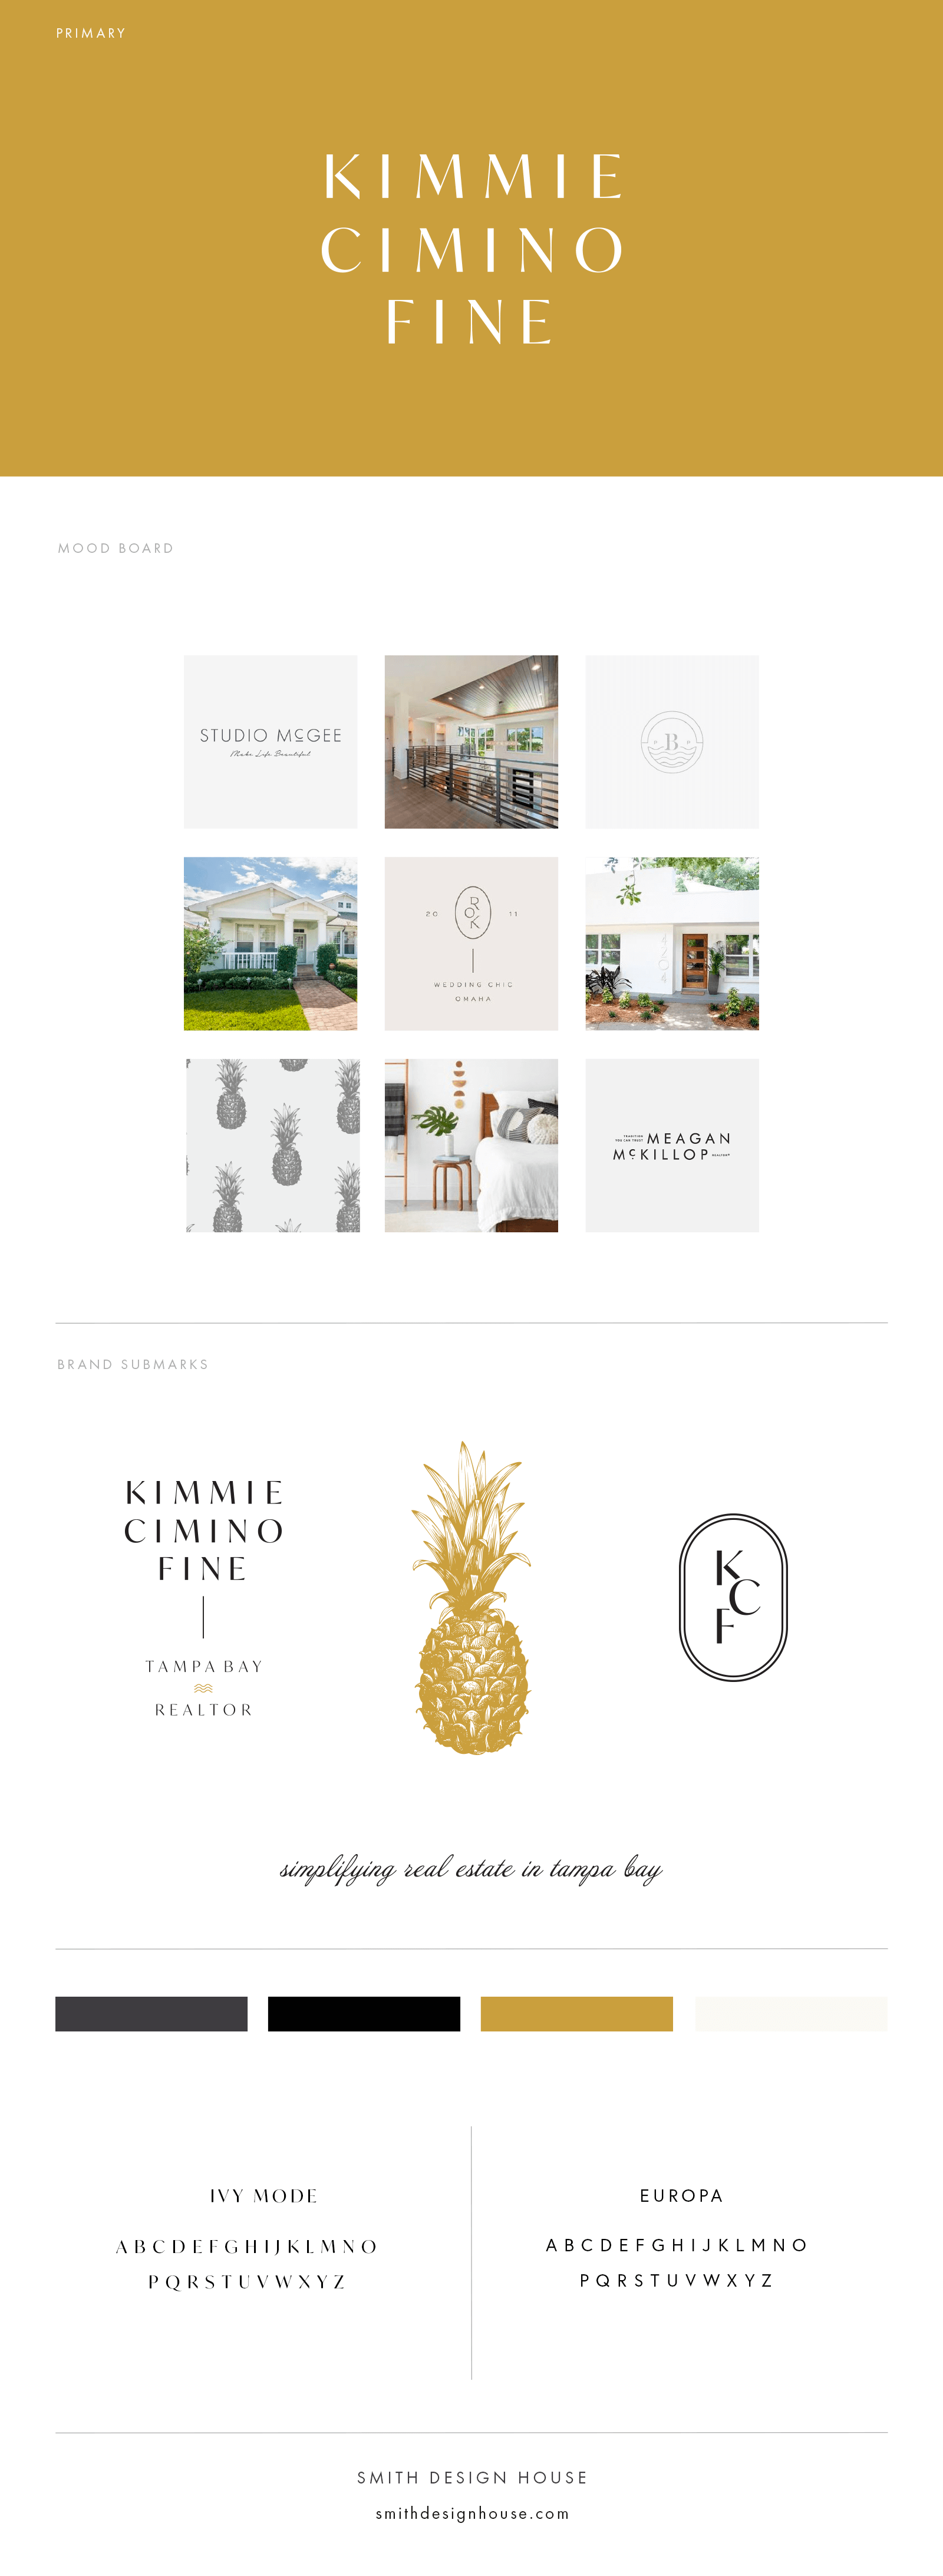 Kimmie Cimino Fine Realtor Branding by Smith Design House